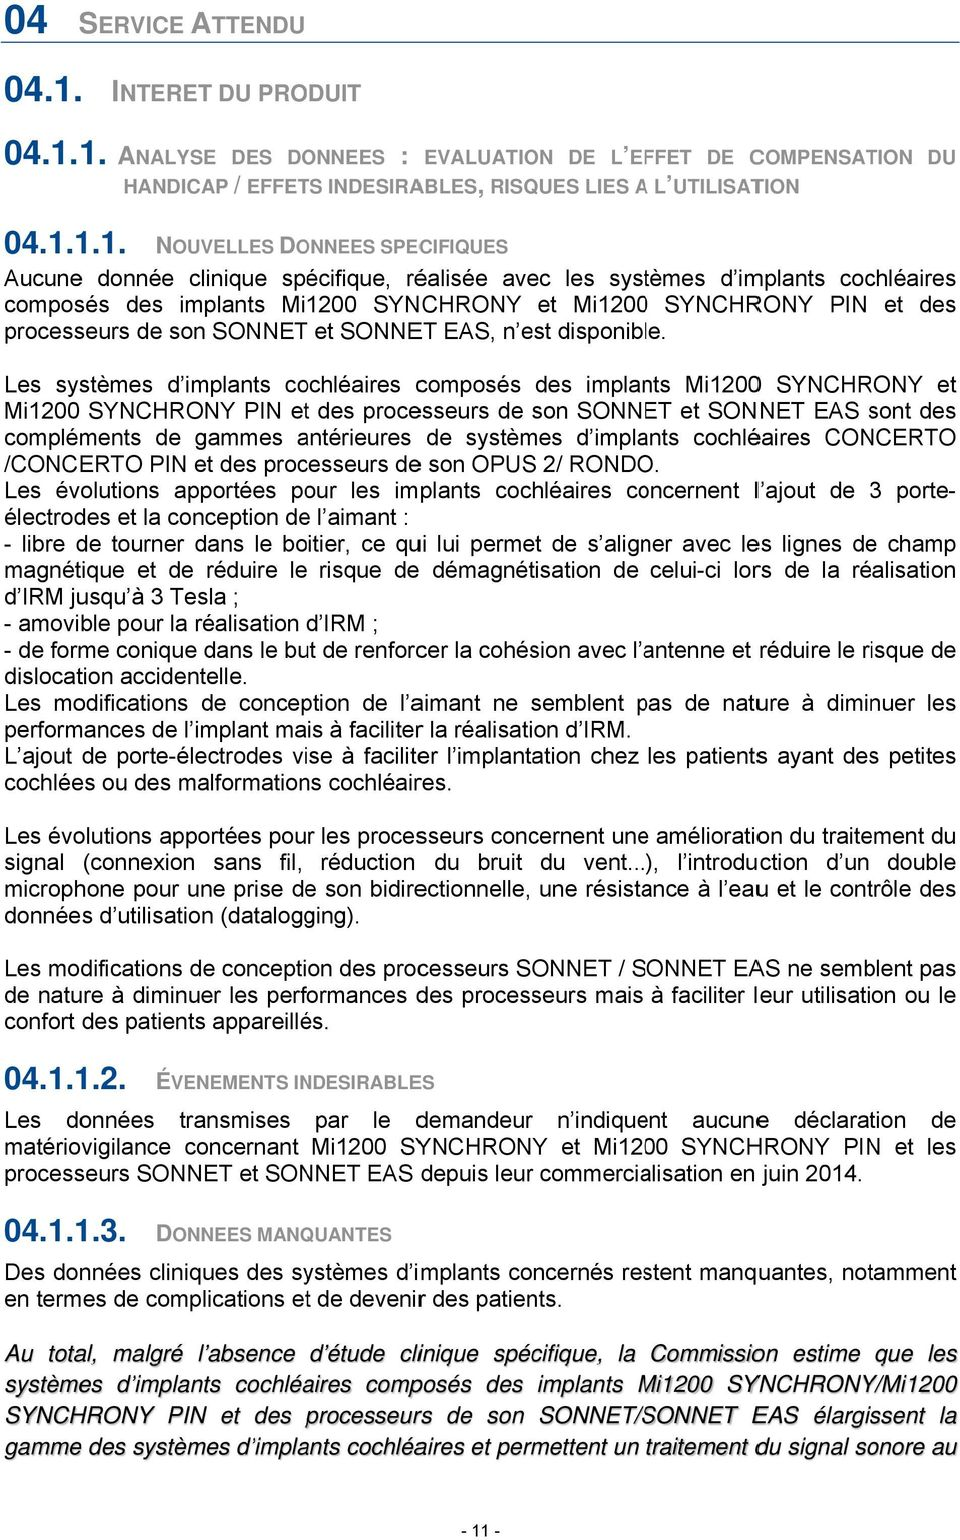 1. ANALYSE DES DONNEES : EVALUATION DE L EFFET DE COMPENSATION DU HANDICAP / EFFETS INDESIRABLES, RISQUES LIES A L UTILISATION 04.1.1.1. NOU Aucune donnée clinique spécifique, réalisée avec les